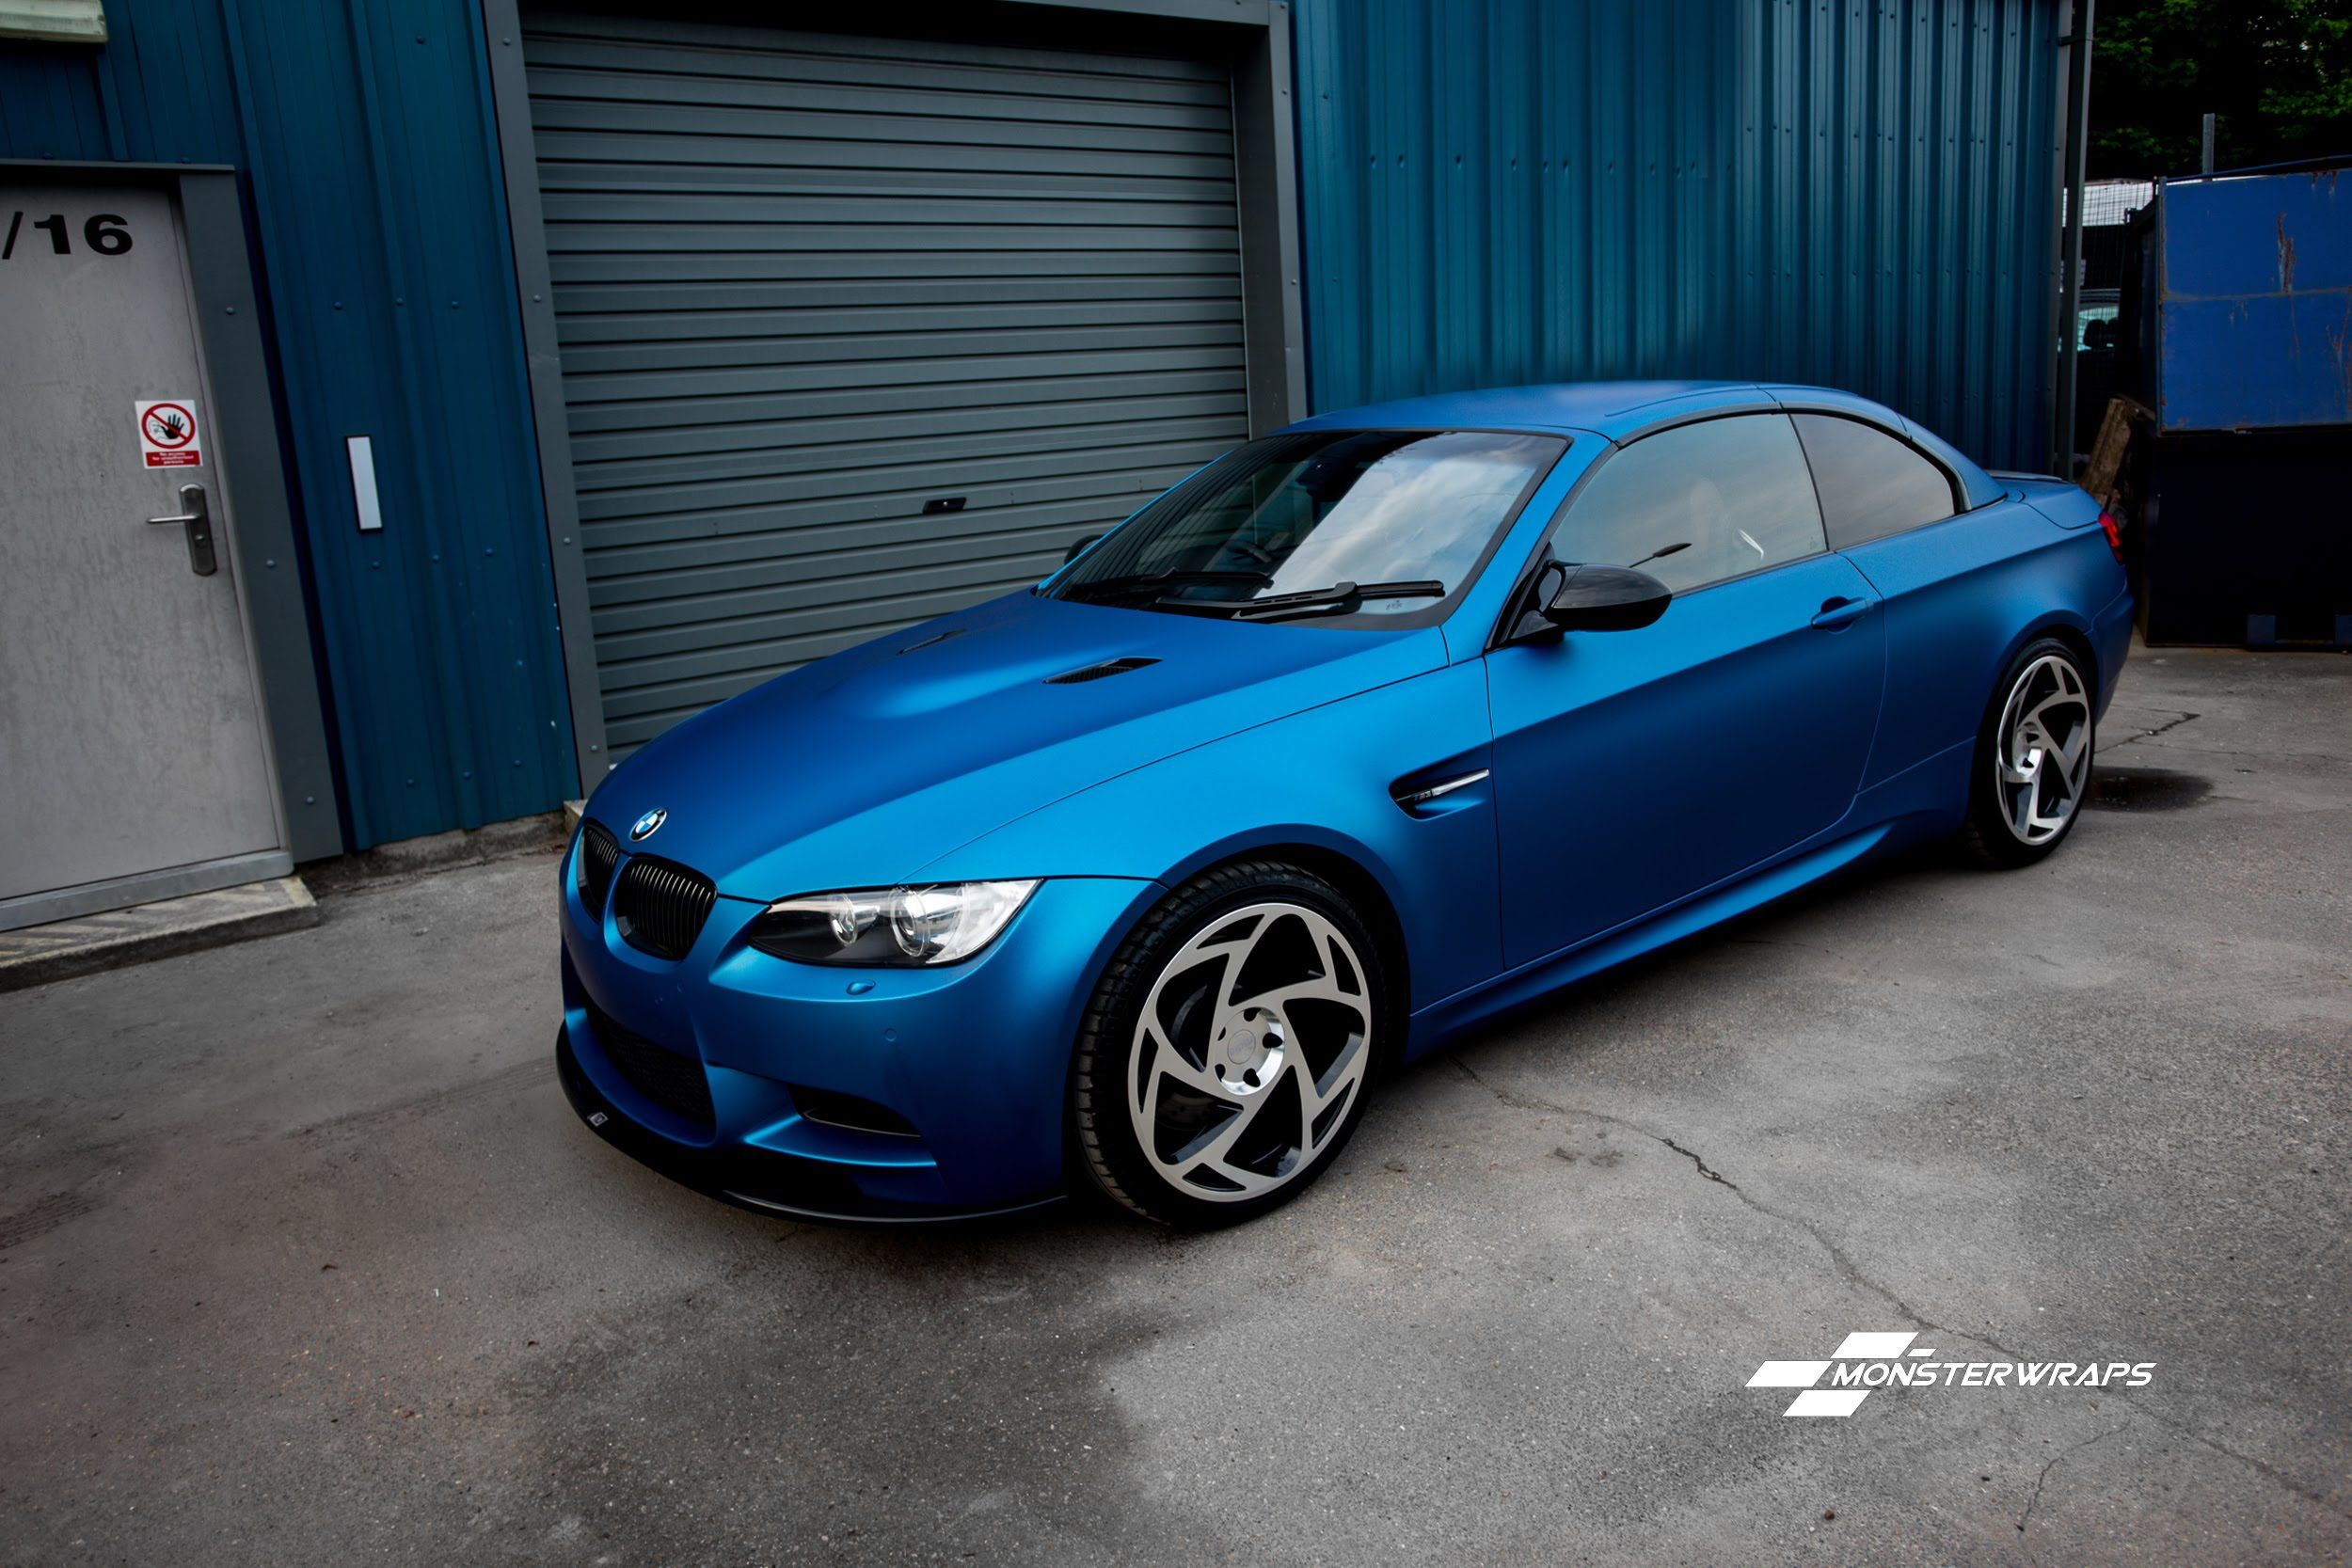 Monsterwraps Car Wrap Southampton Matte Blue Metallic Bmw M3